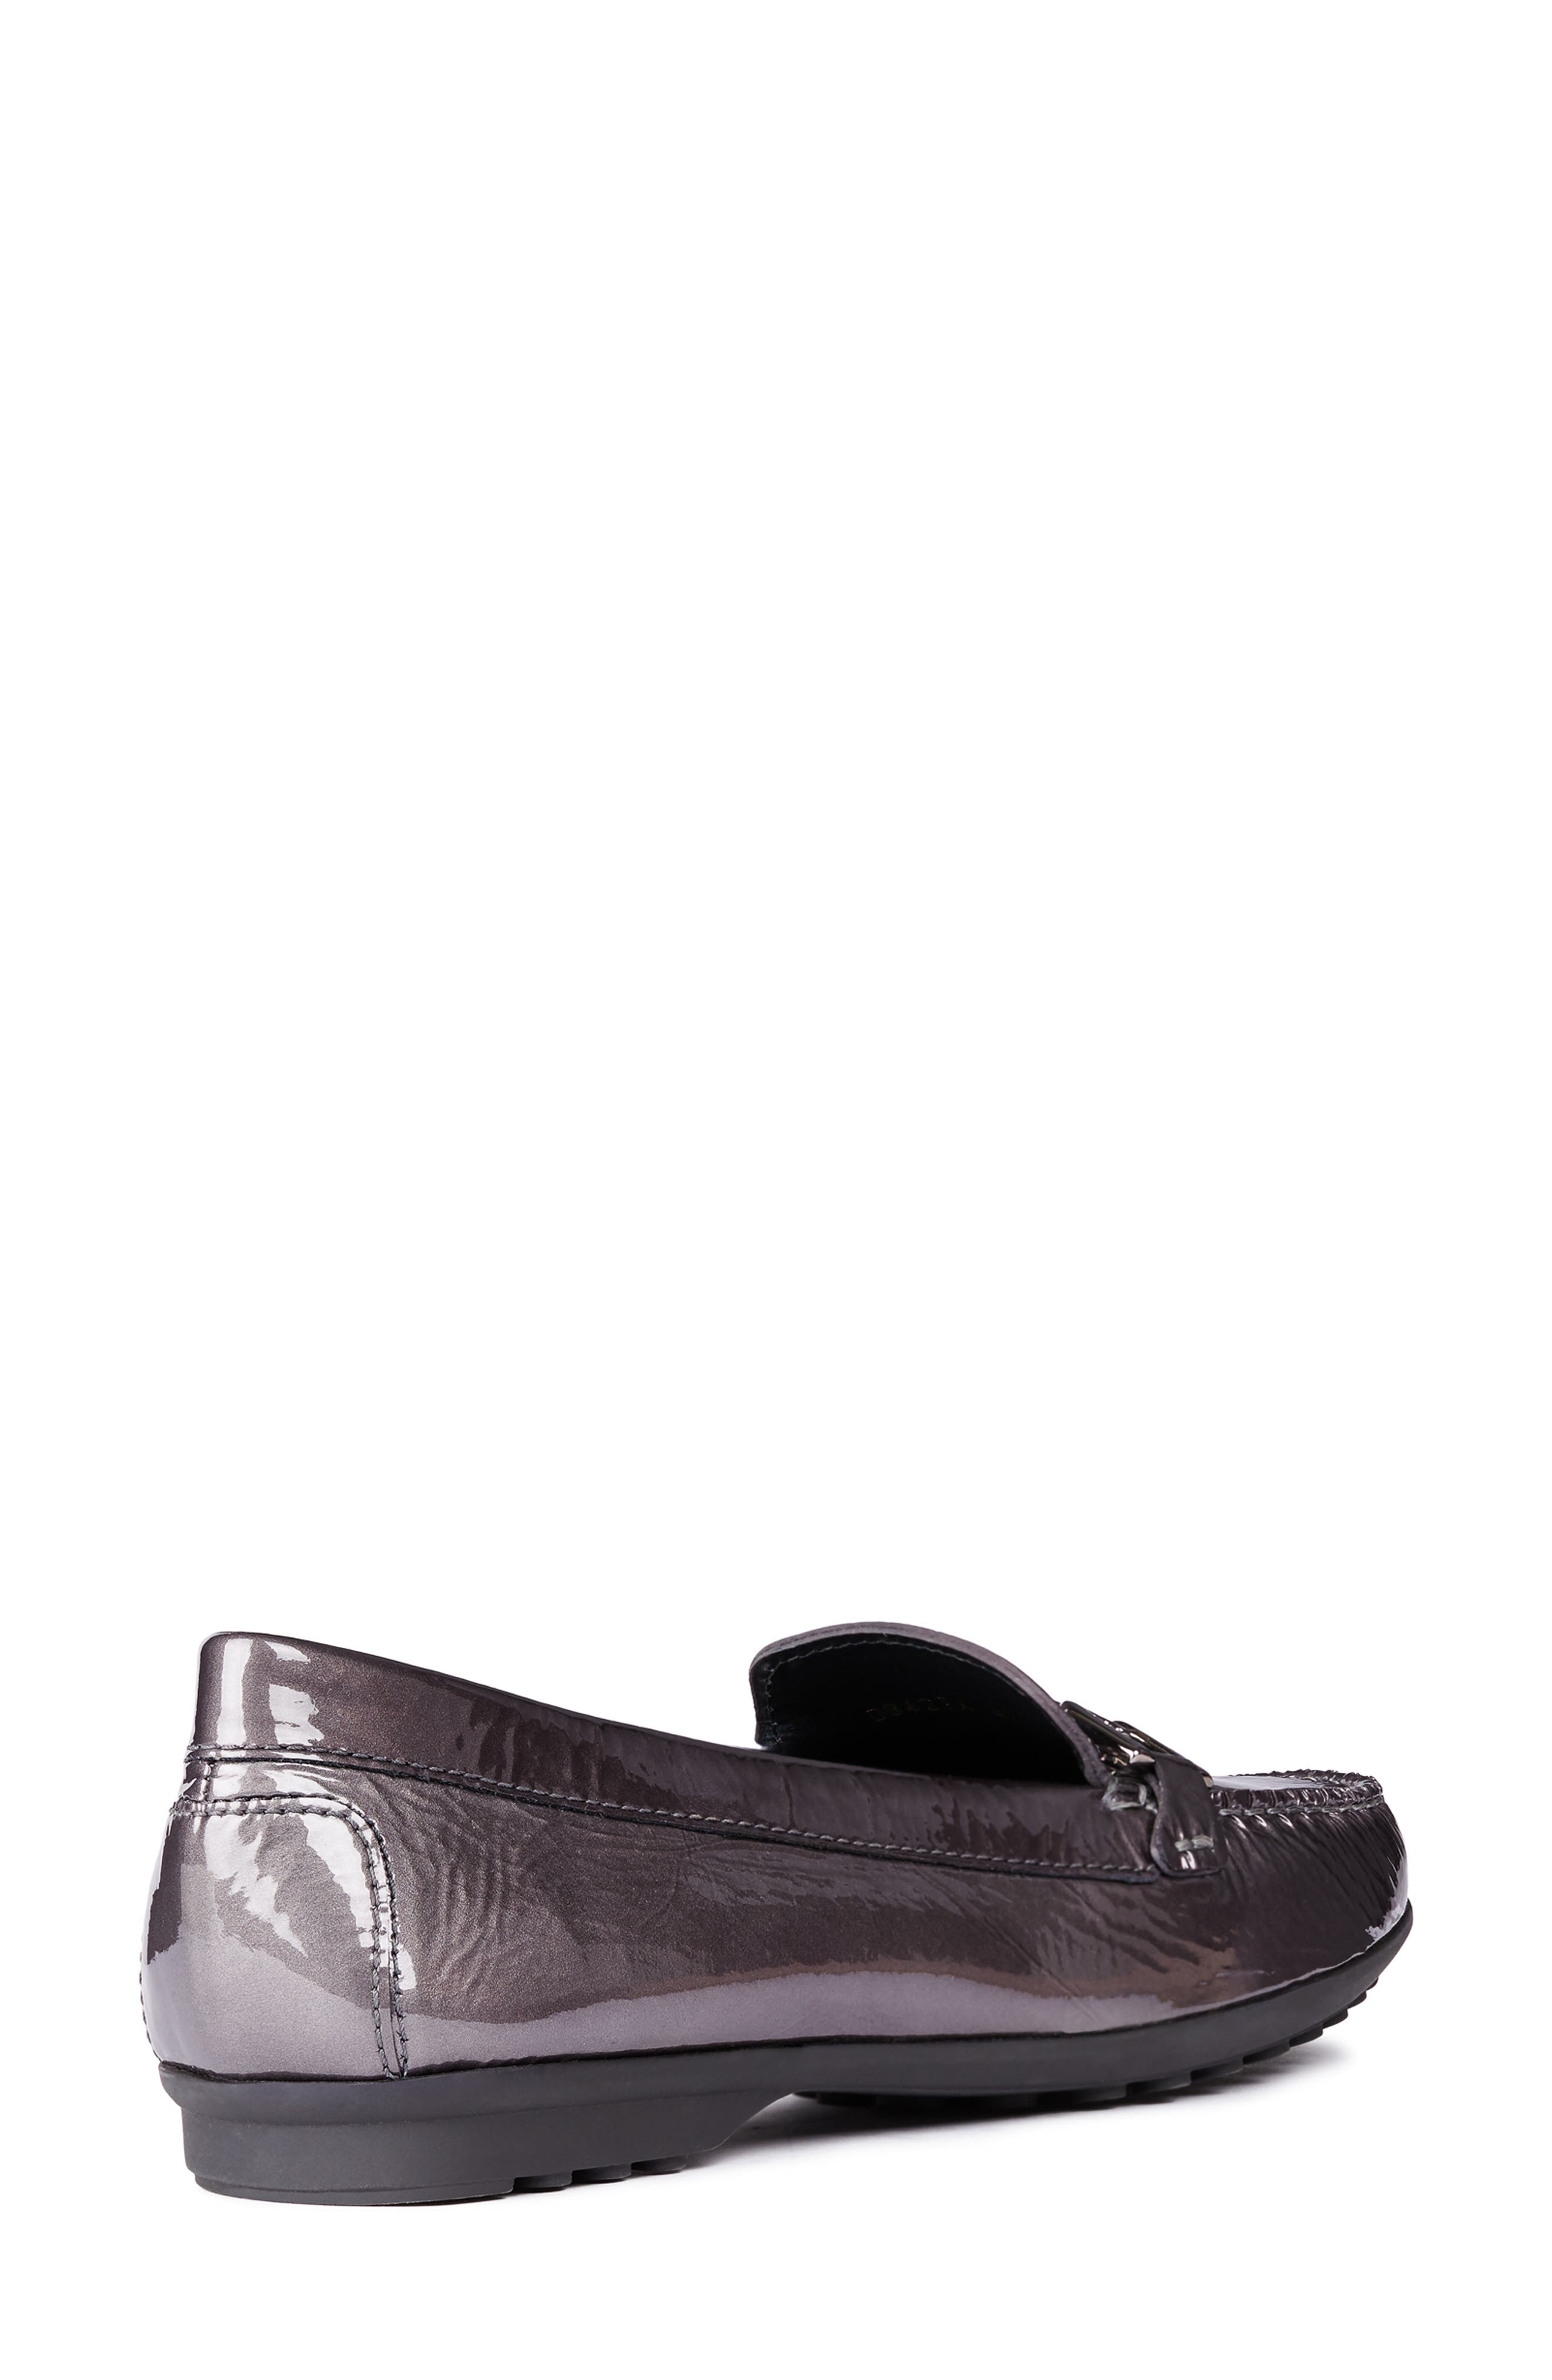 GEOX, Elidia Loafer, Alternate thumbnail 6, color, DARK GREY LEATHER